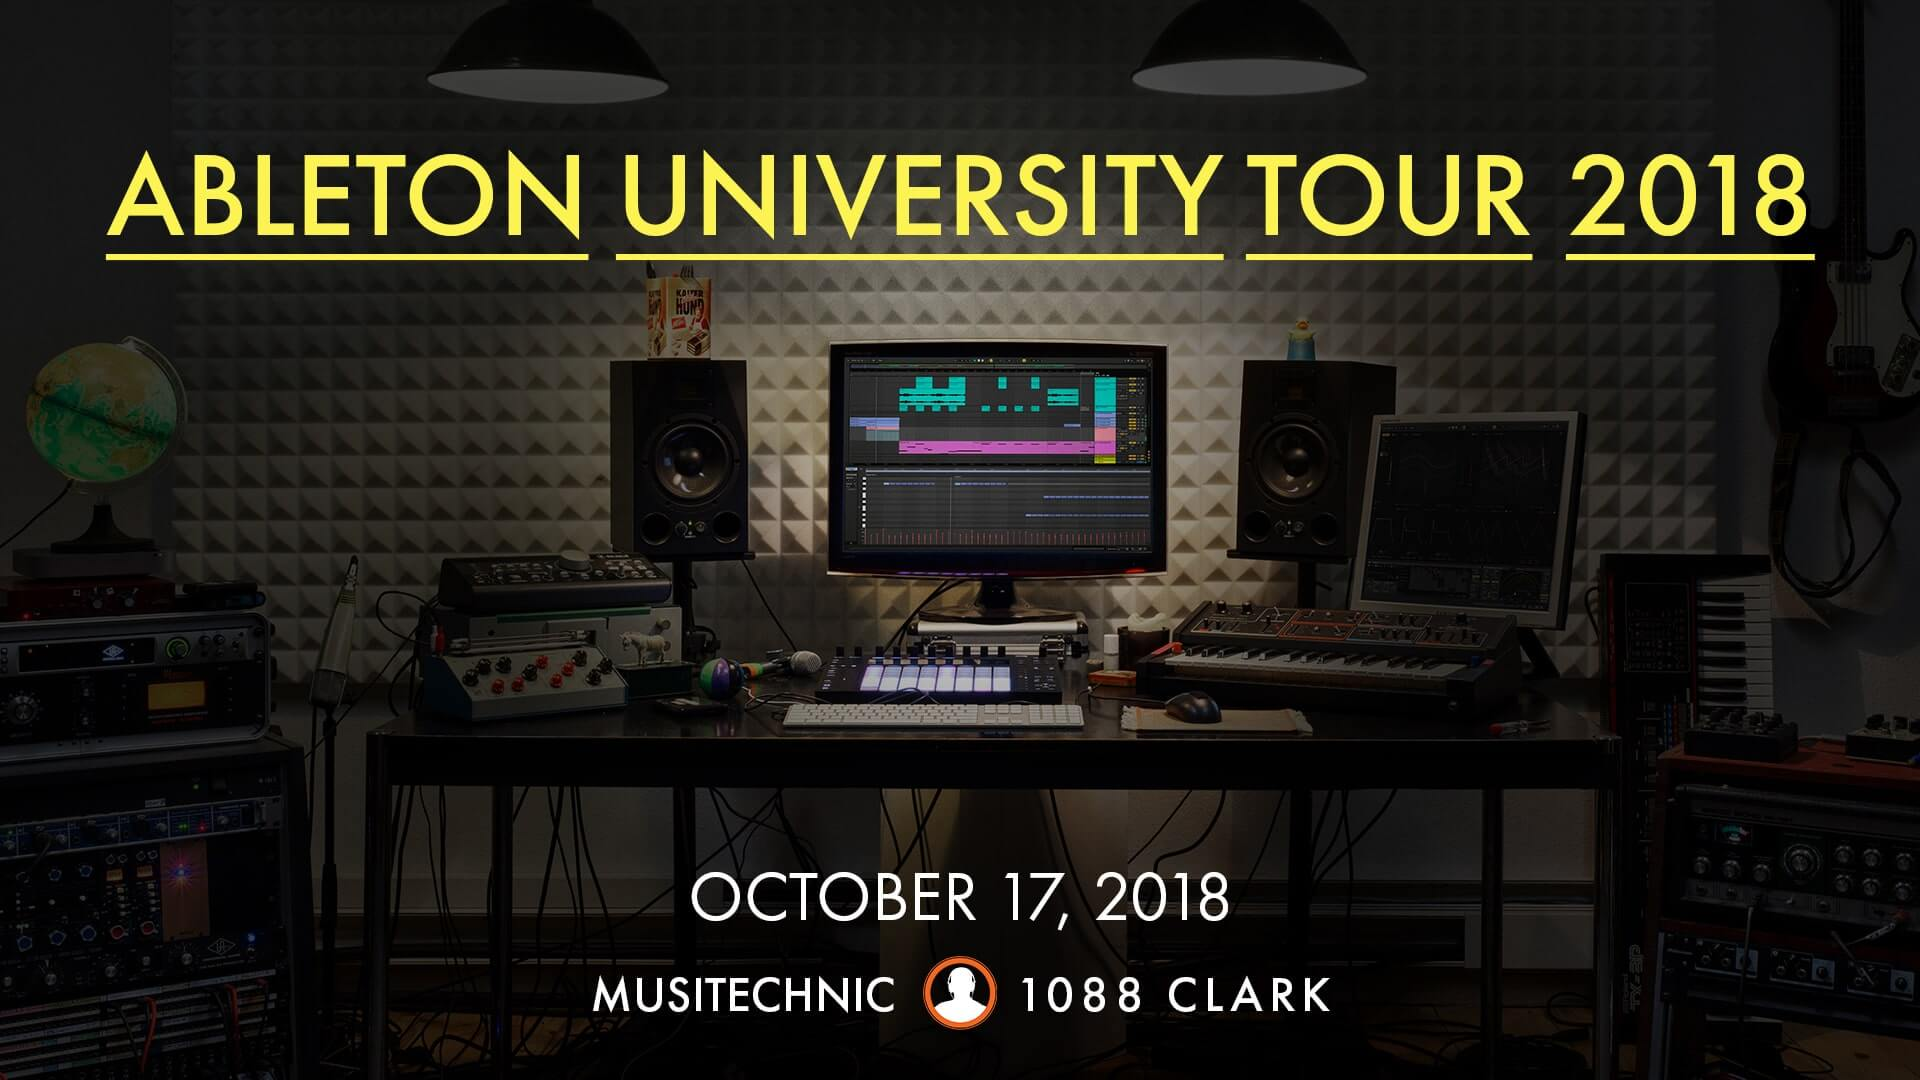 Ableton University Tour 2018 at Musitechnic